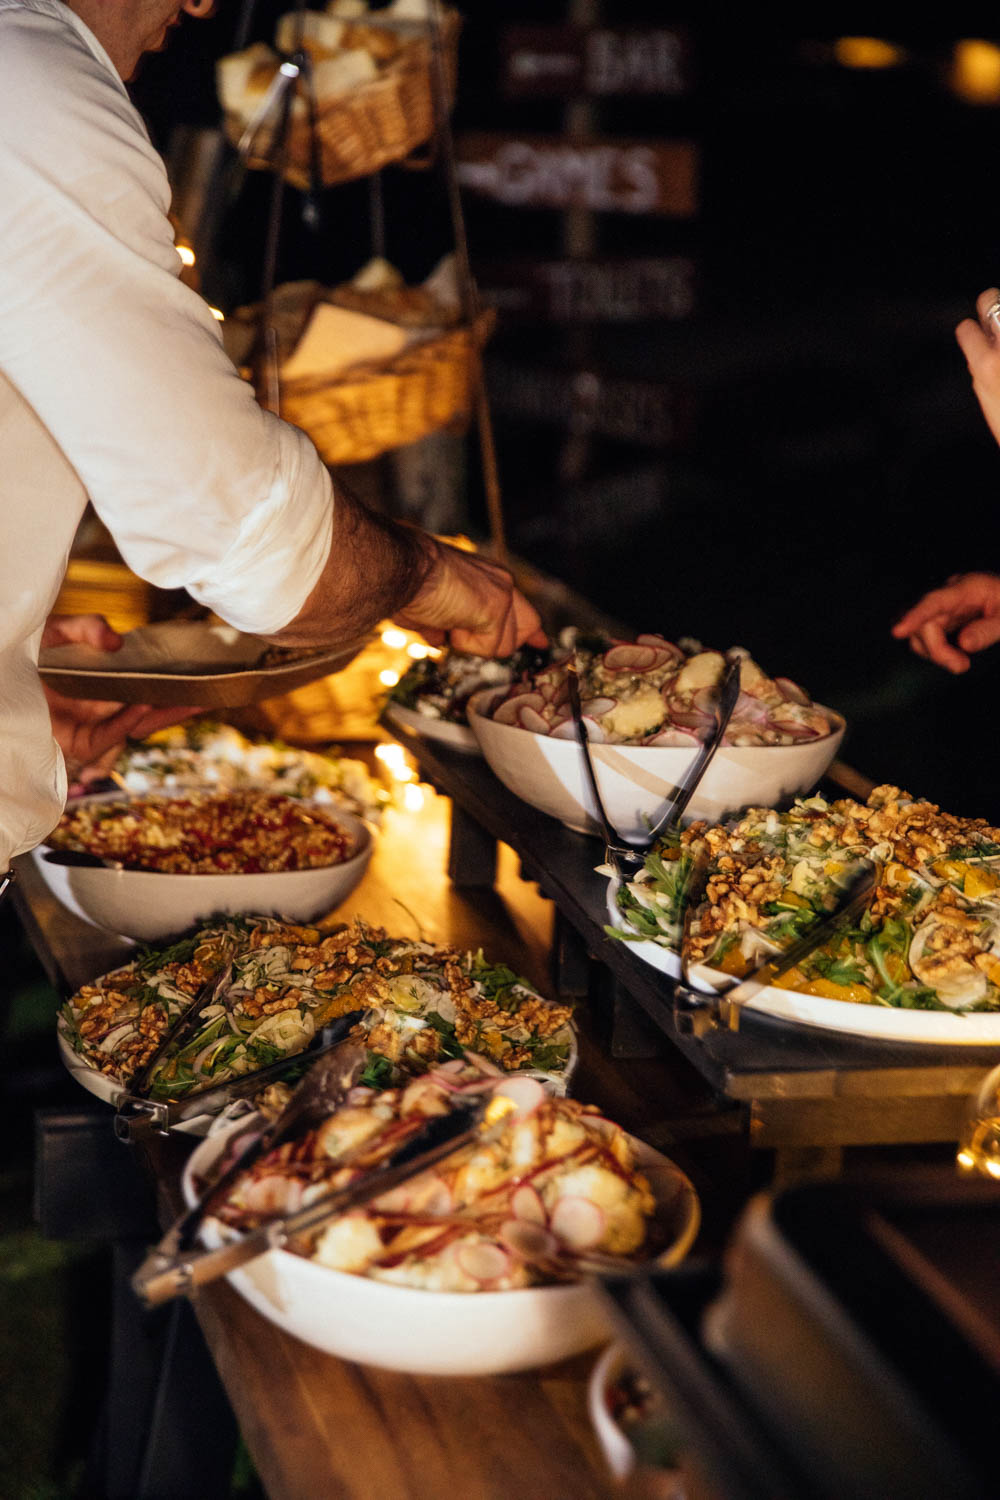 Vanteen Catering - Buffet - catering service Sunshine Coast - Fruit-7.jpg